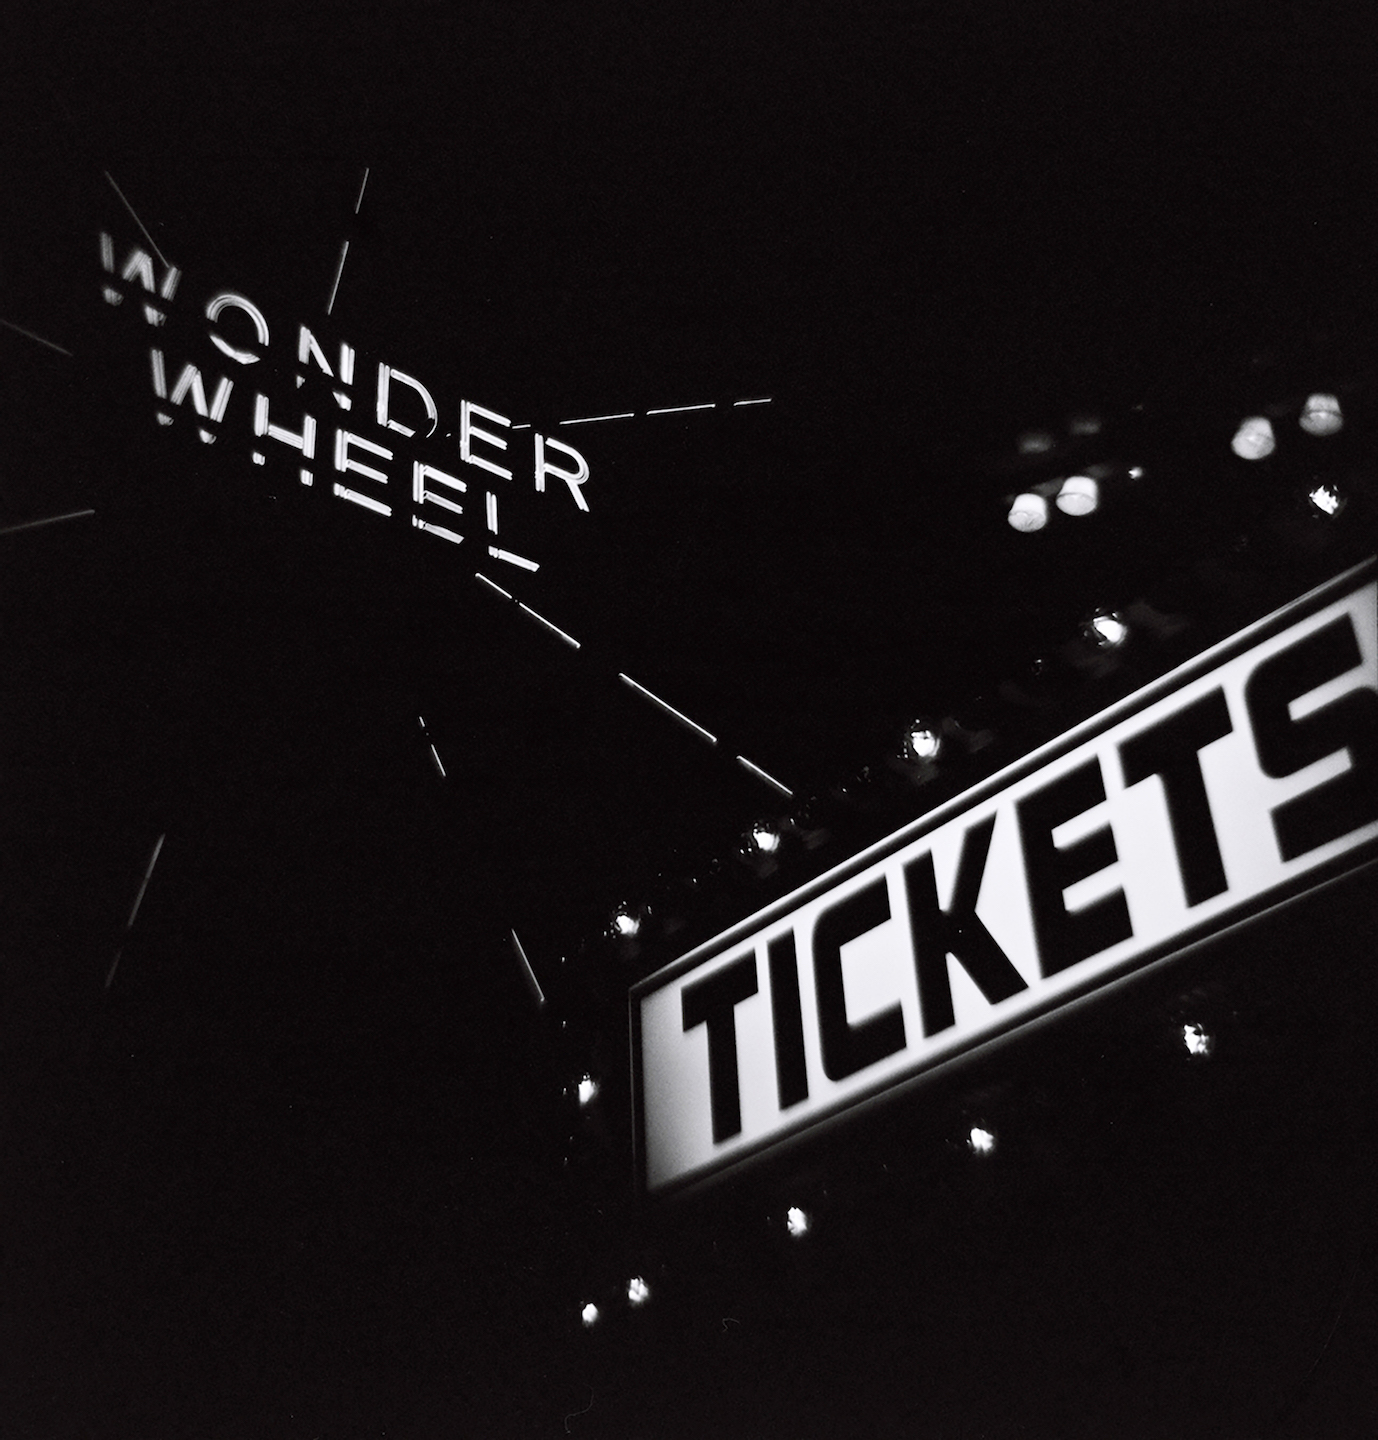 WONDER WHEEL TICKETS